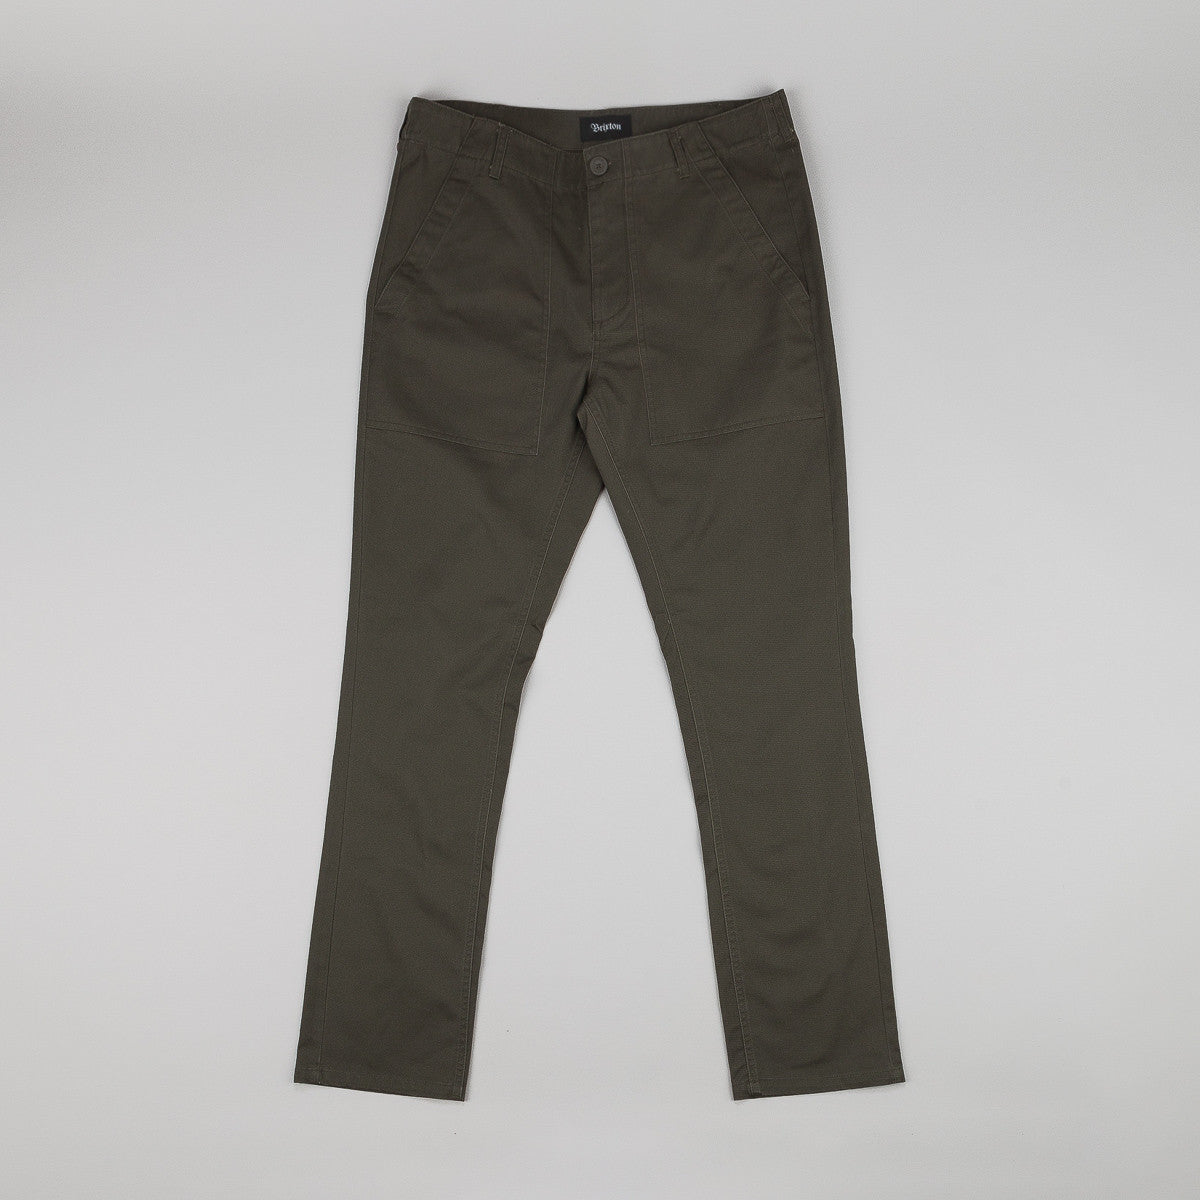 Brixton Reserve Service Trousers